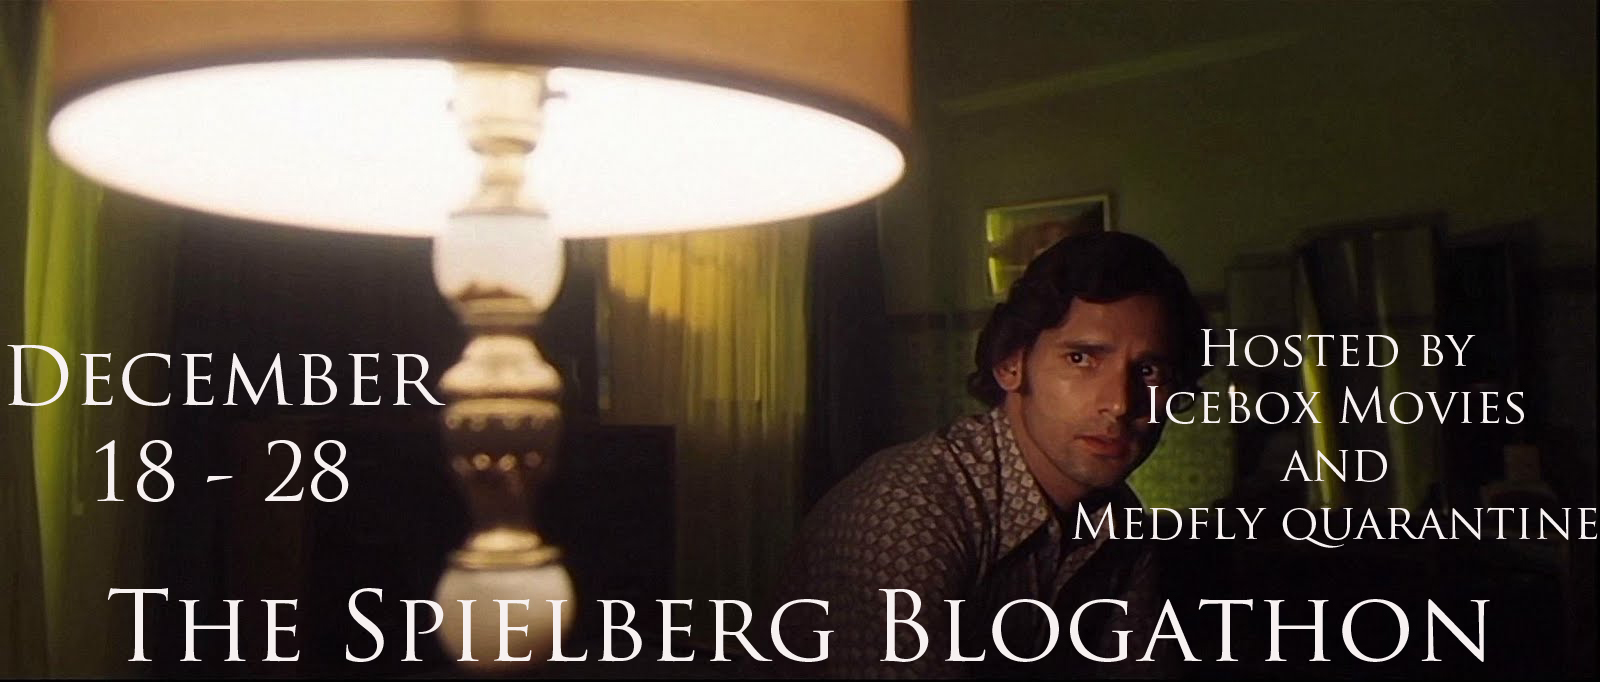 The Spielberg Blogathon